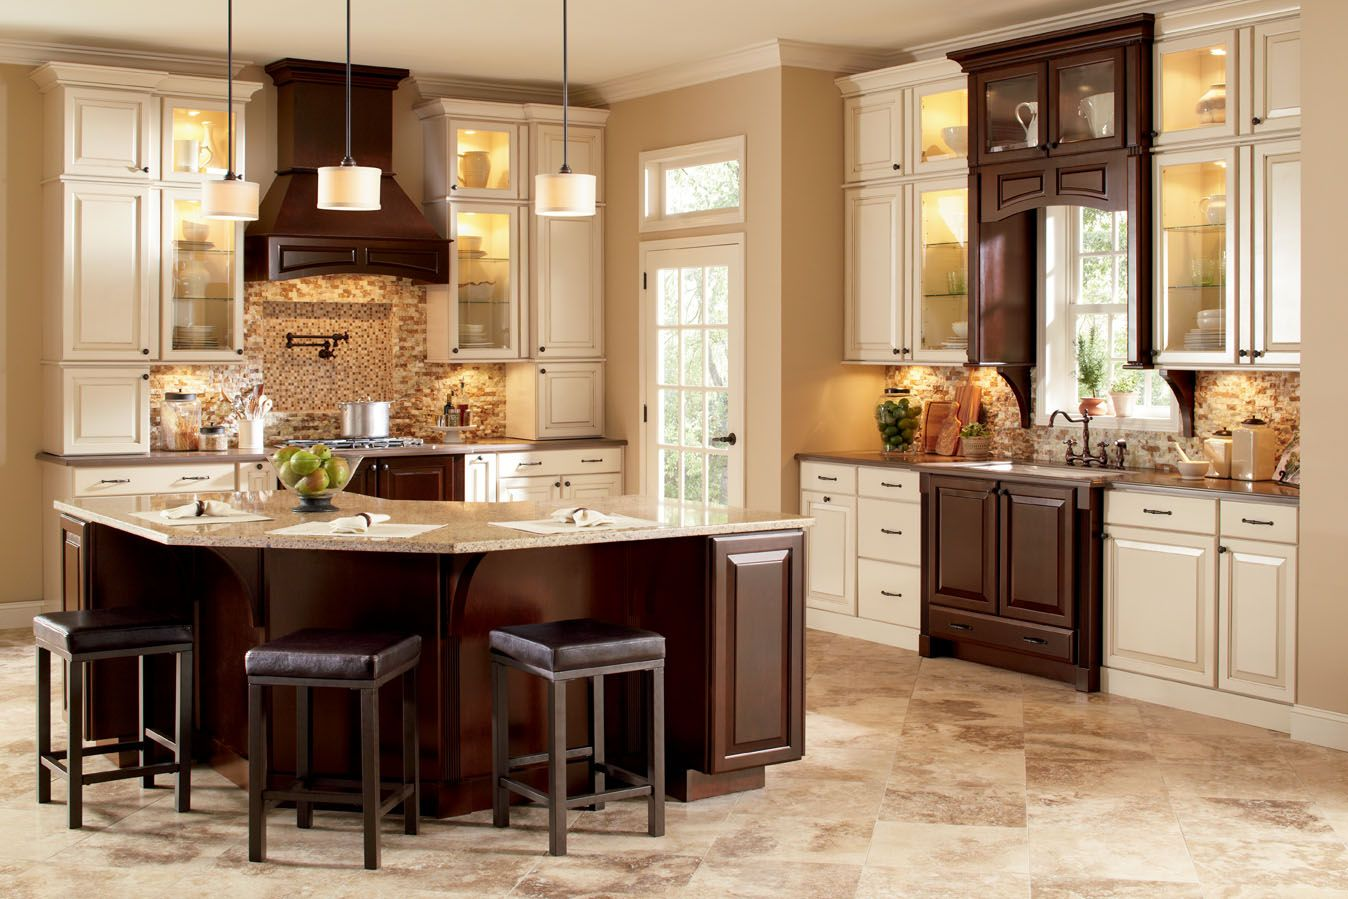 Review on american kitchen cabinets labels home and for Kitchen cabinets designs